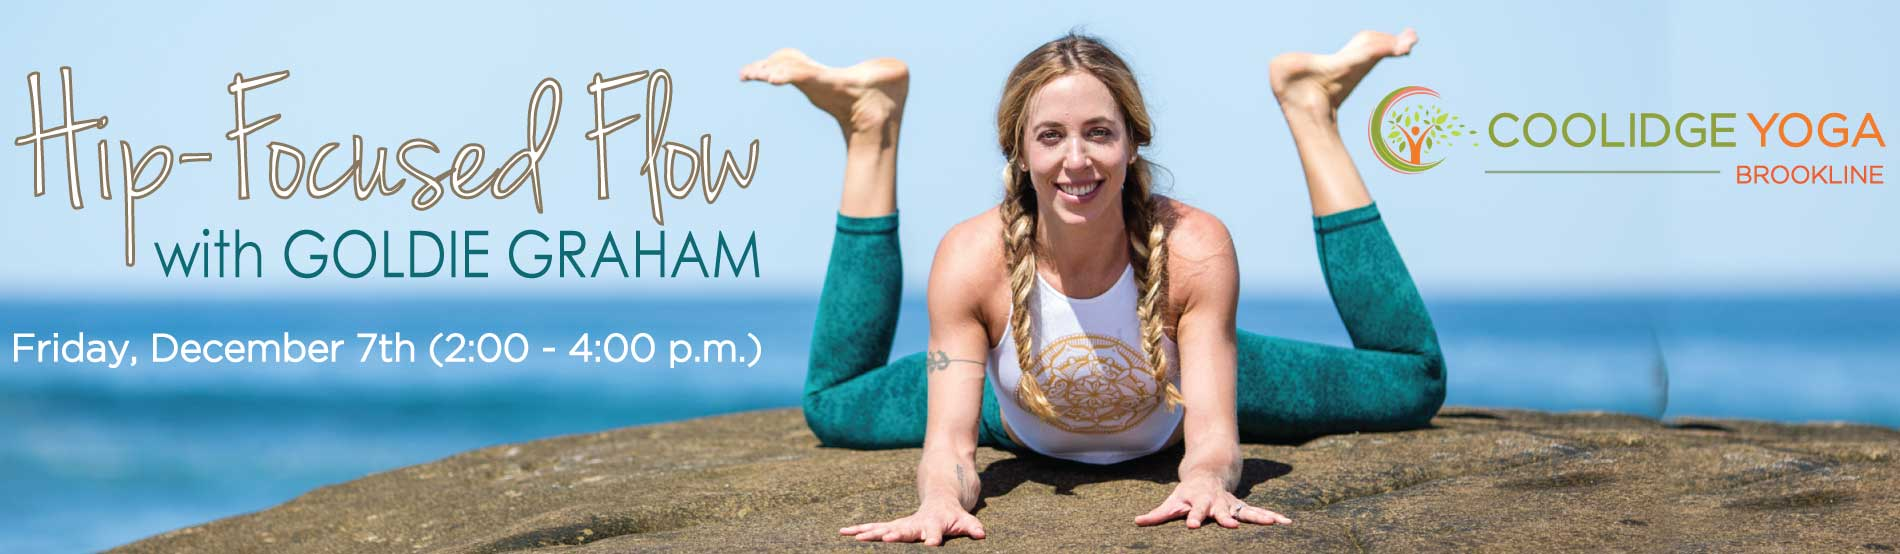 Hip-Focused Flow - with Goldie Graham at Coolidge Yoga